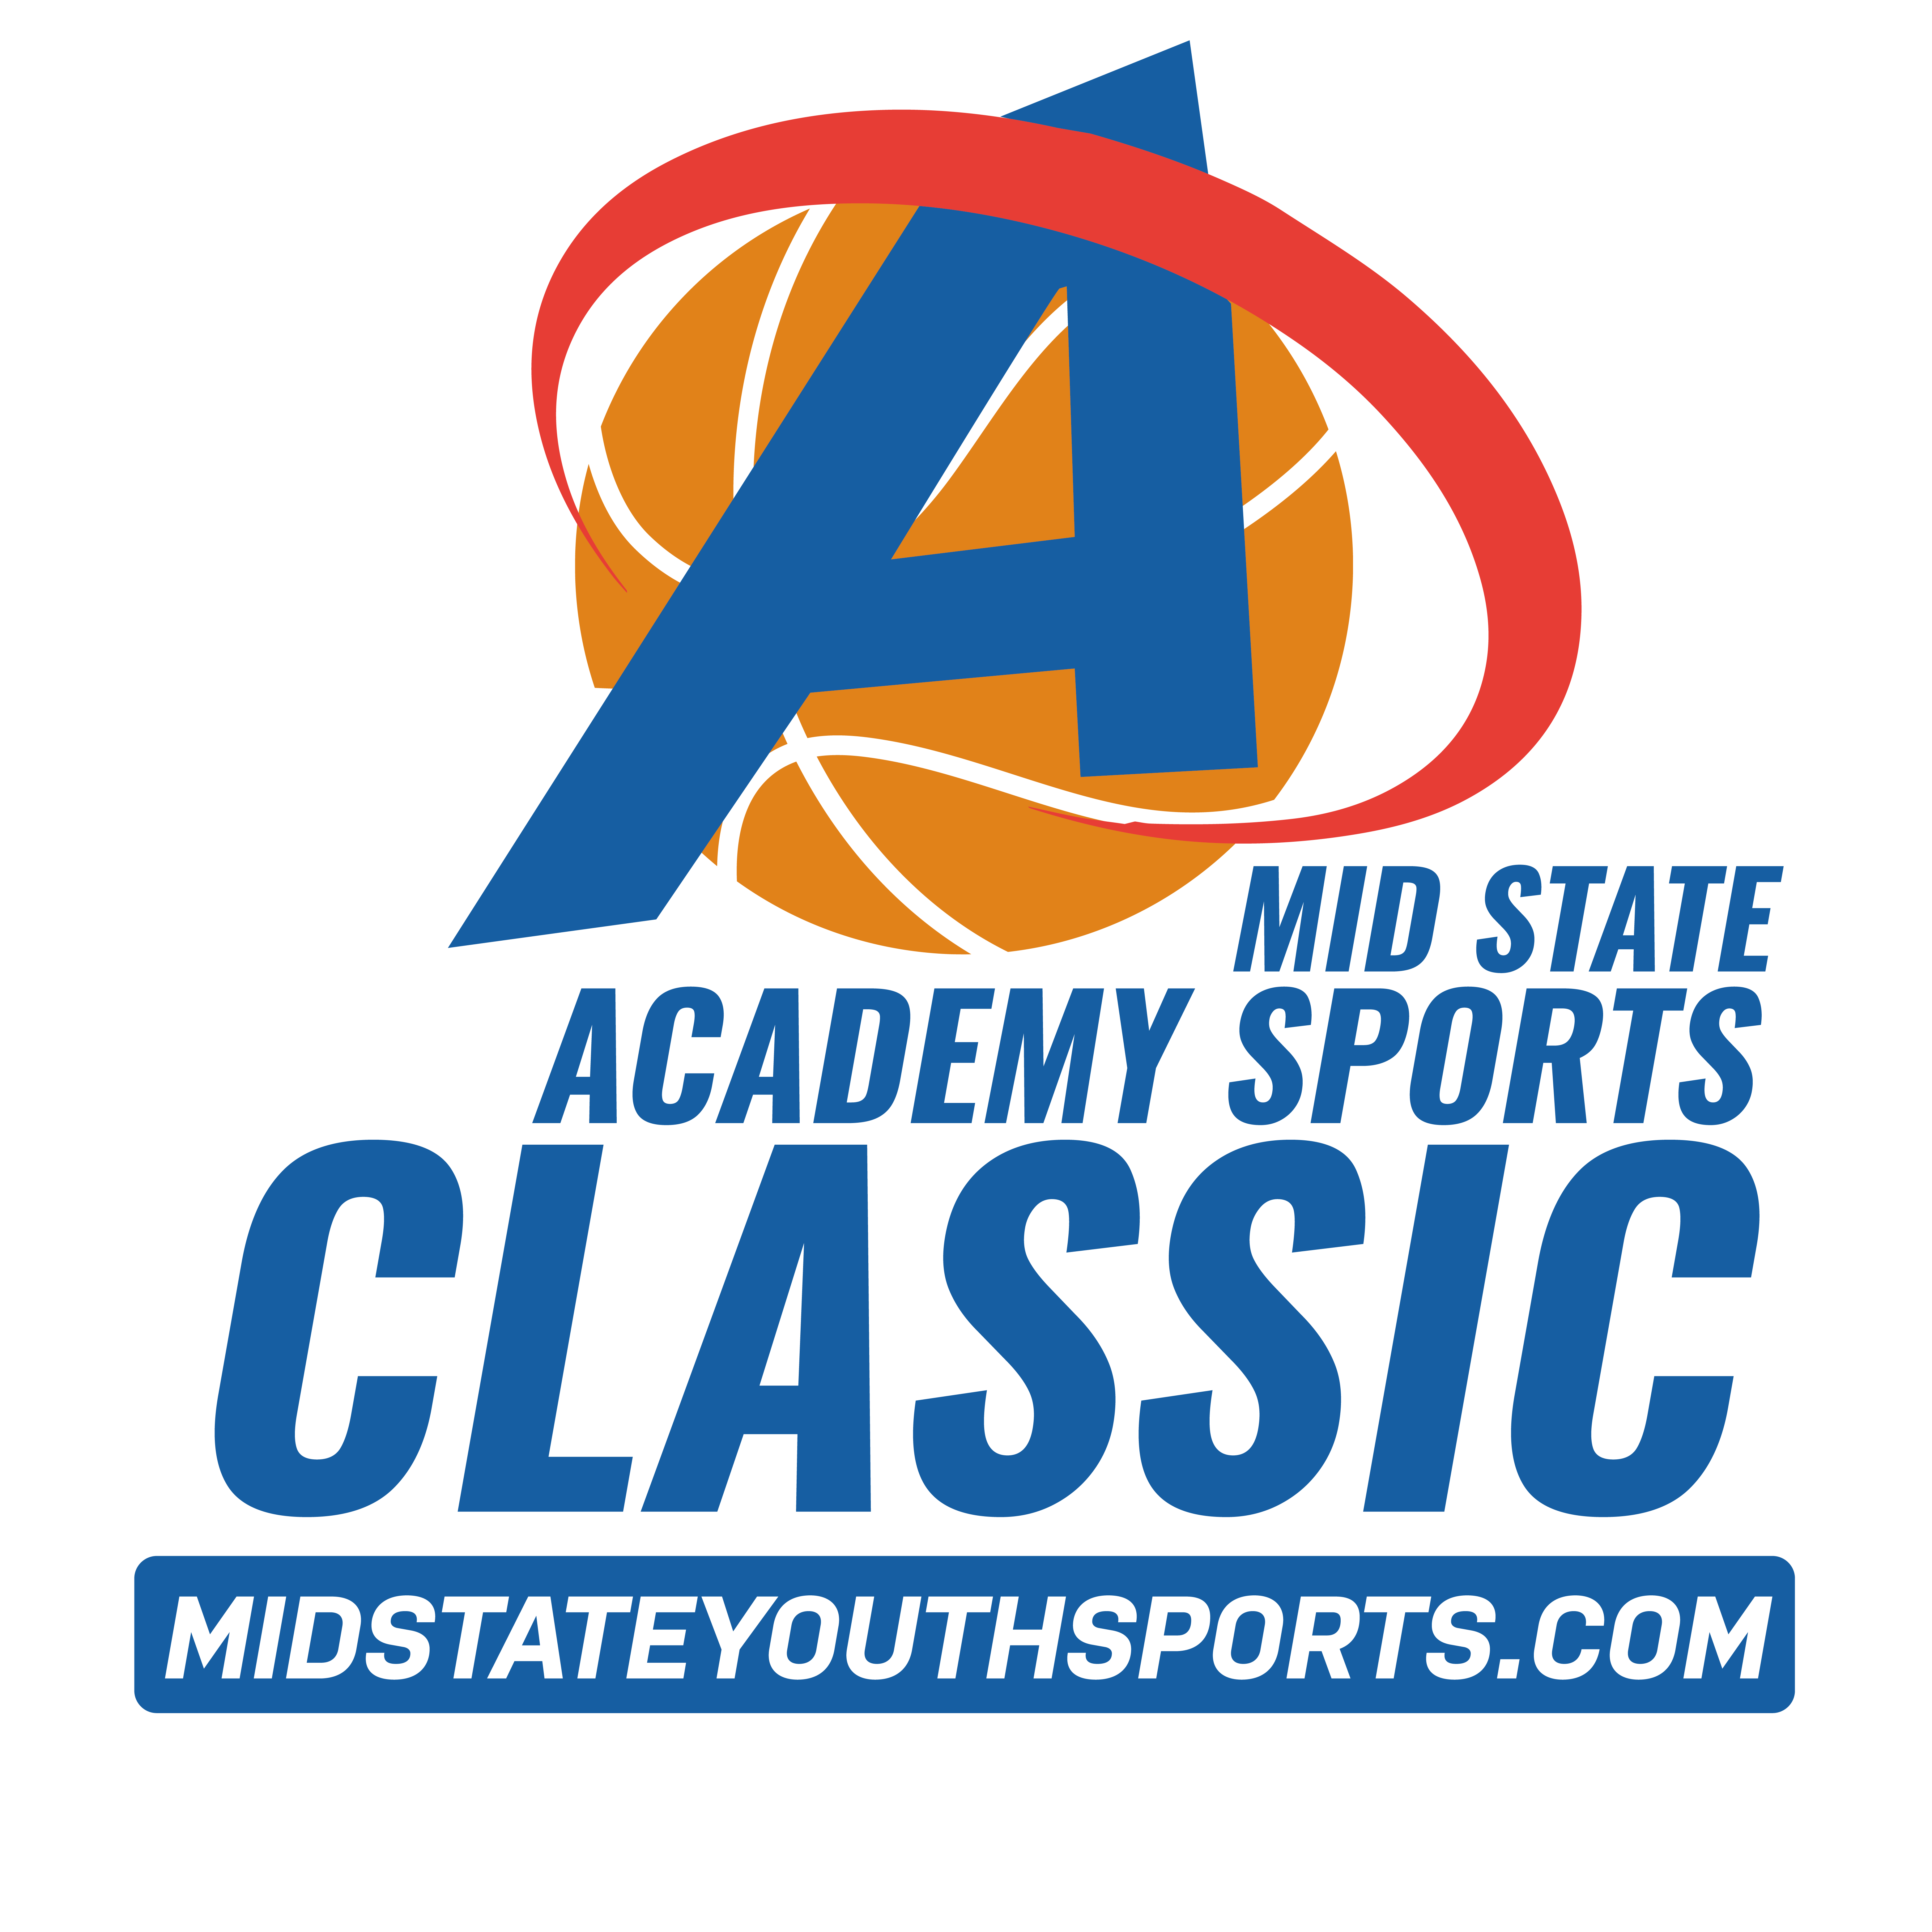 MSYS 7th Annual Mid State Academy Sports Classic